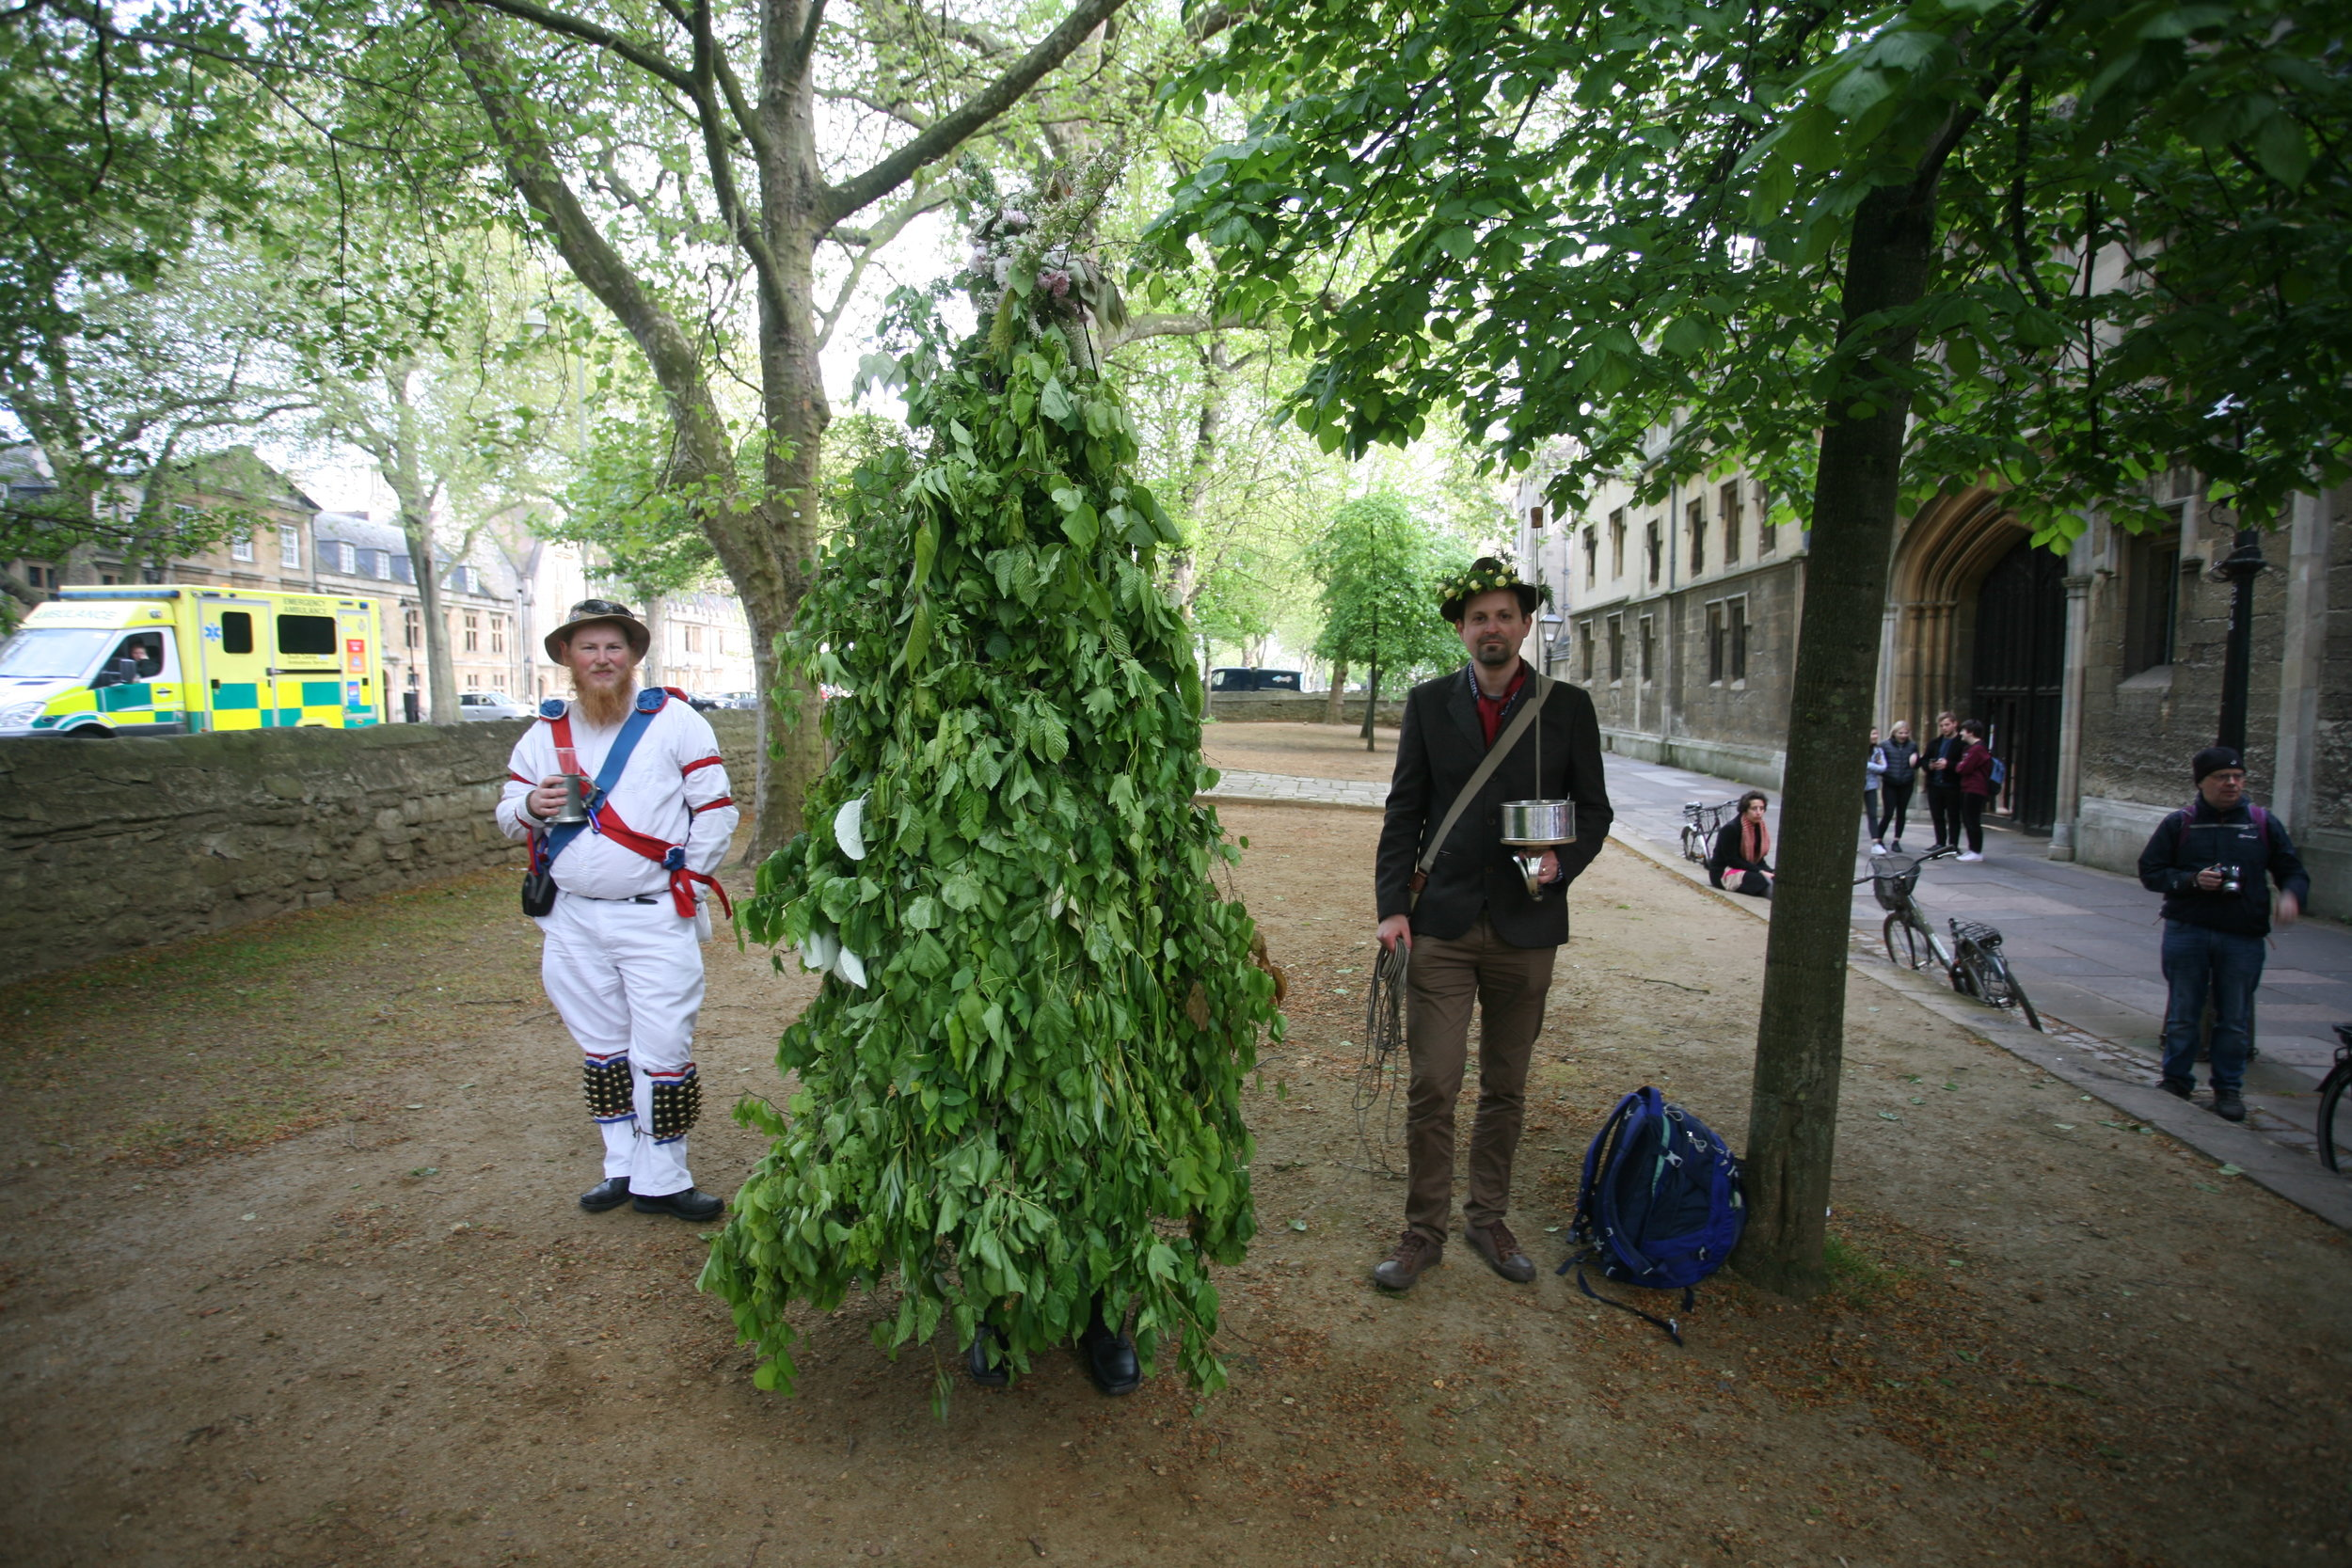 tree and Swordsman arrive at st john's college